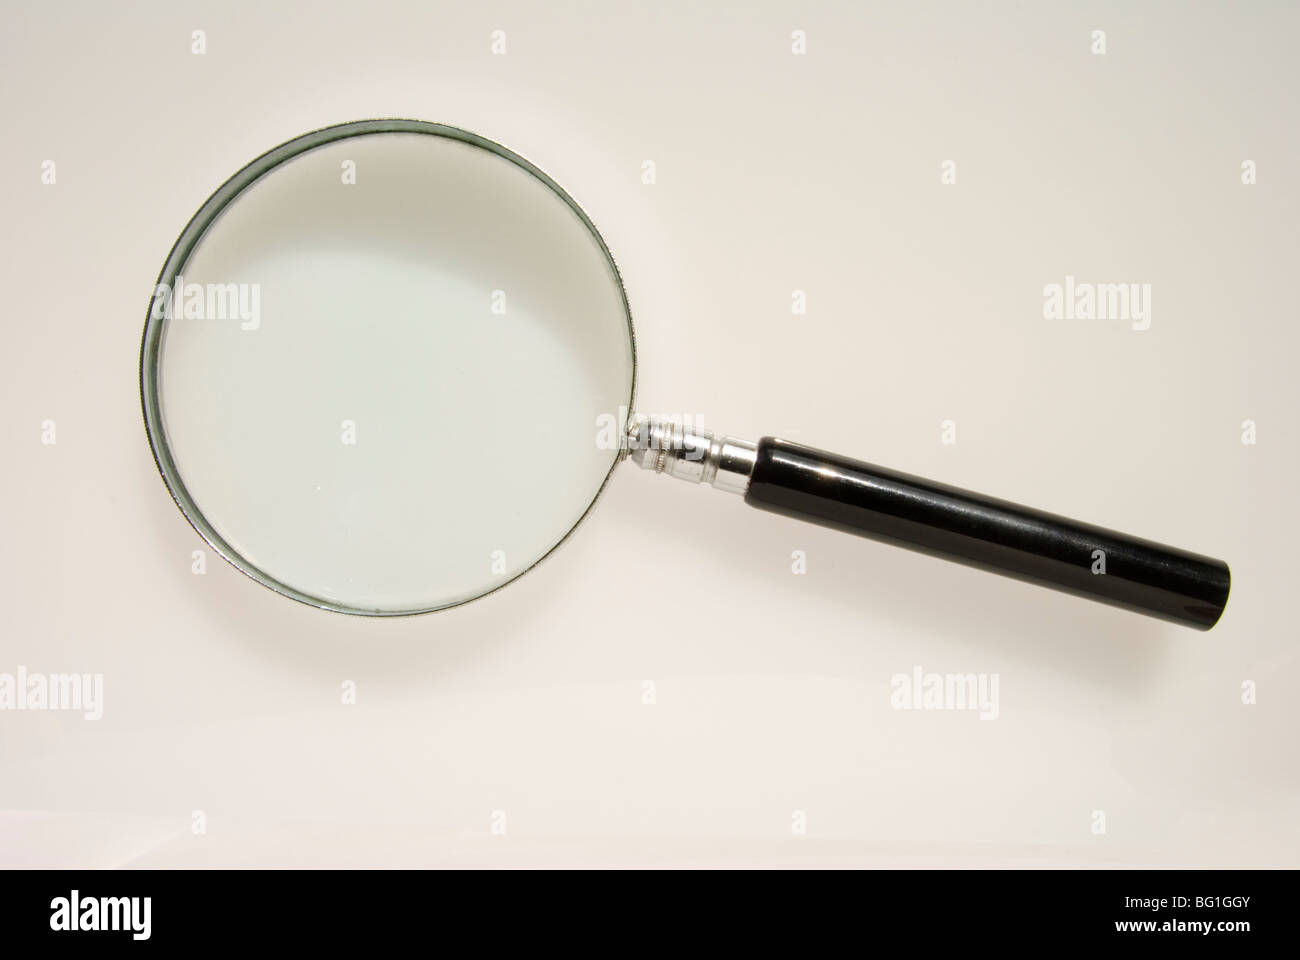 Magnifying glass - Stock Image